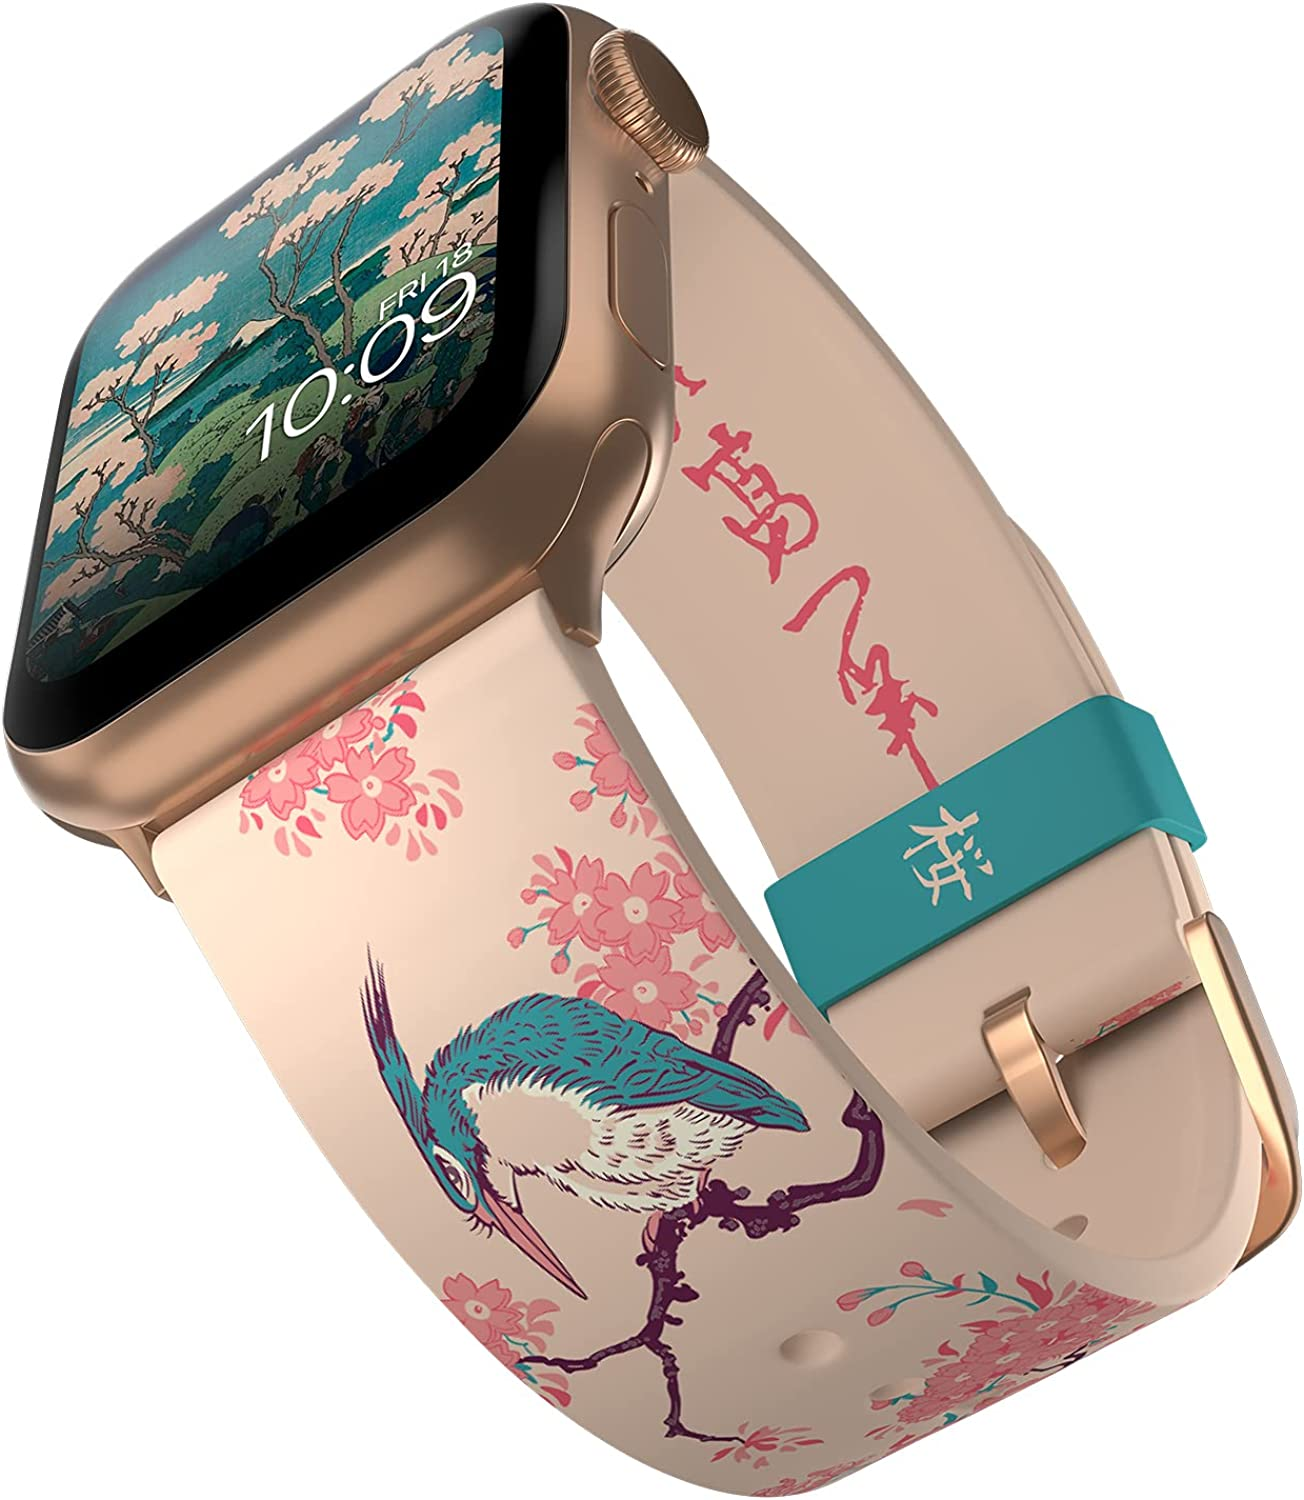 Hokusai - Cherry Blossom Smartwatch Band - Inspired by the Artist, Compatible with Apple Watch (not Included) - Fits 38mm, 40mm, 42mm and 44mm